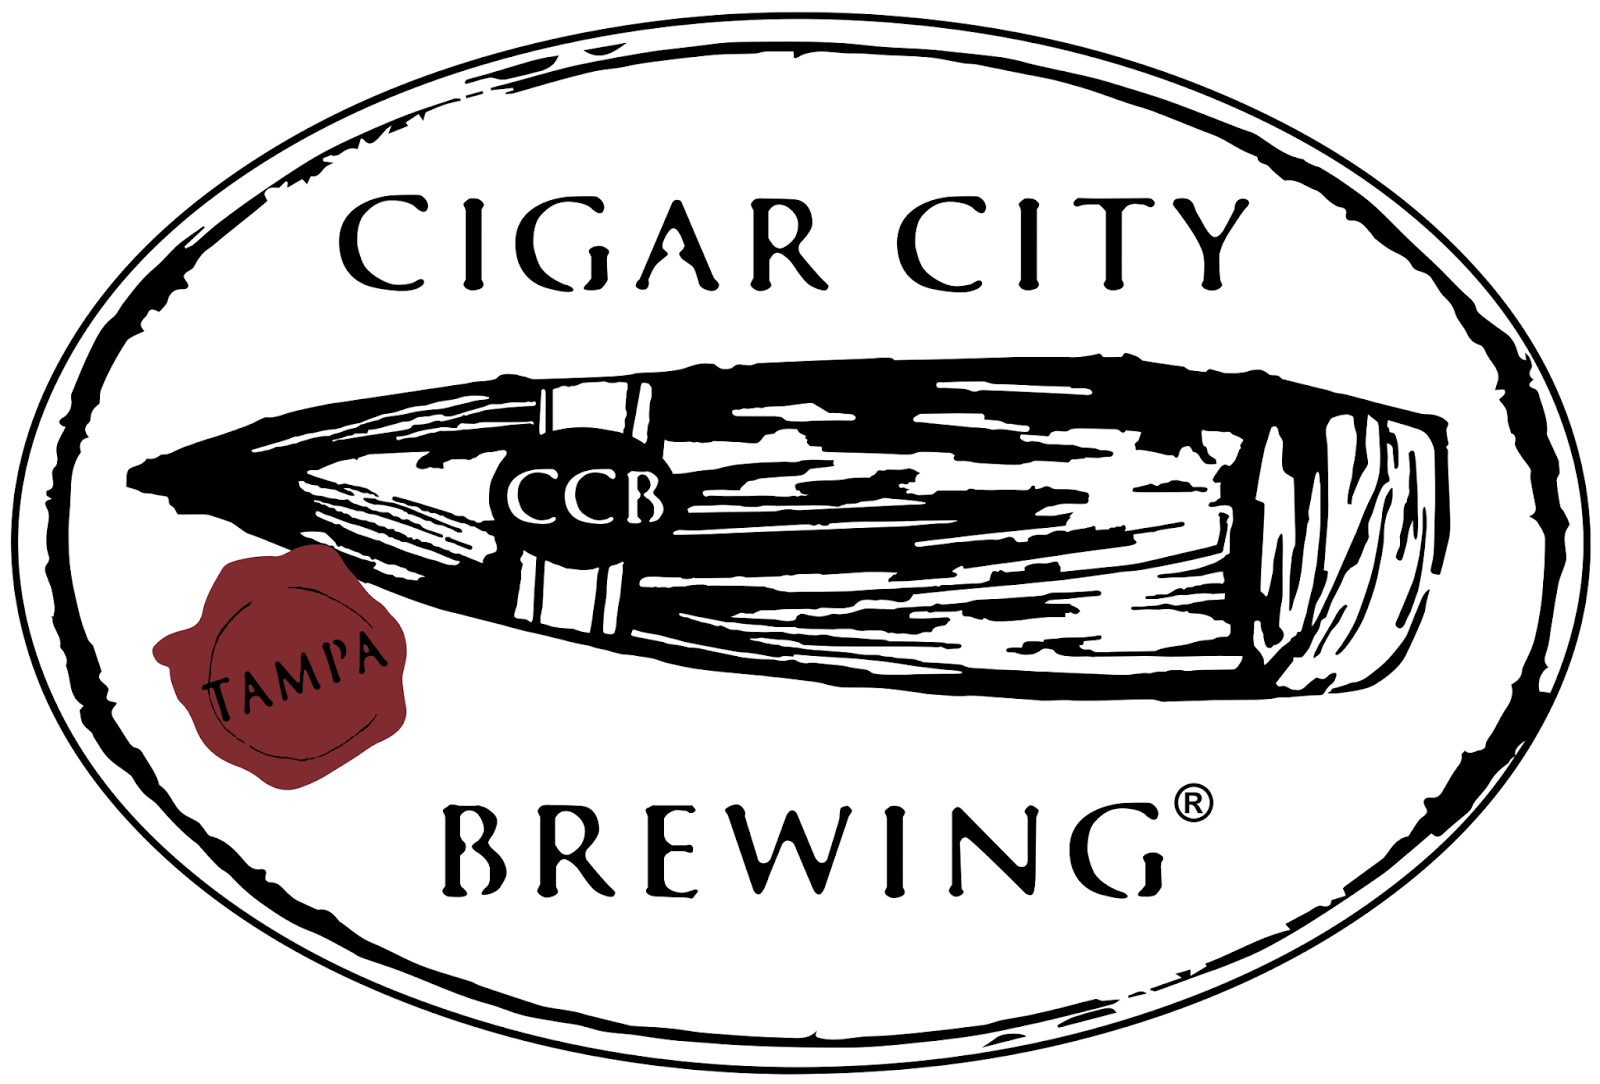 At Christmastime In Sunny Tampa The Brewers Cigar City Will Most Likely Still Be Shorts But This Doesnt Stop Them From Churning Out